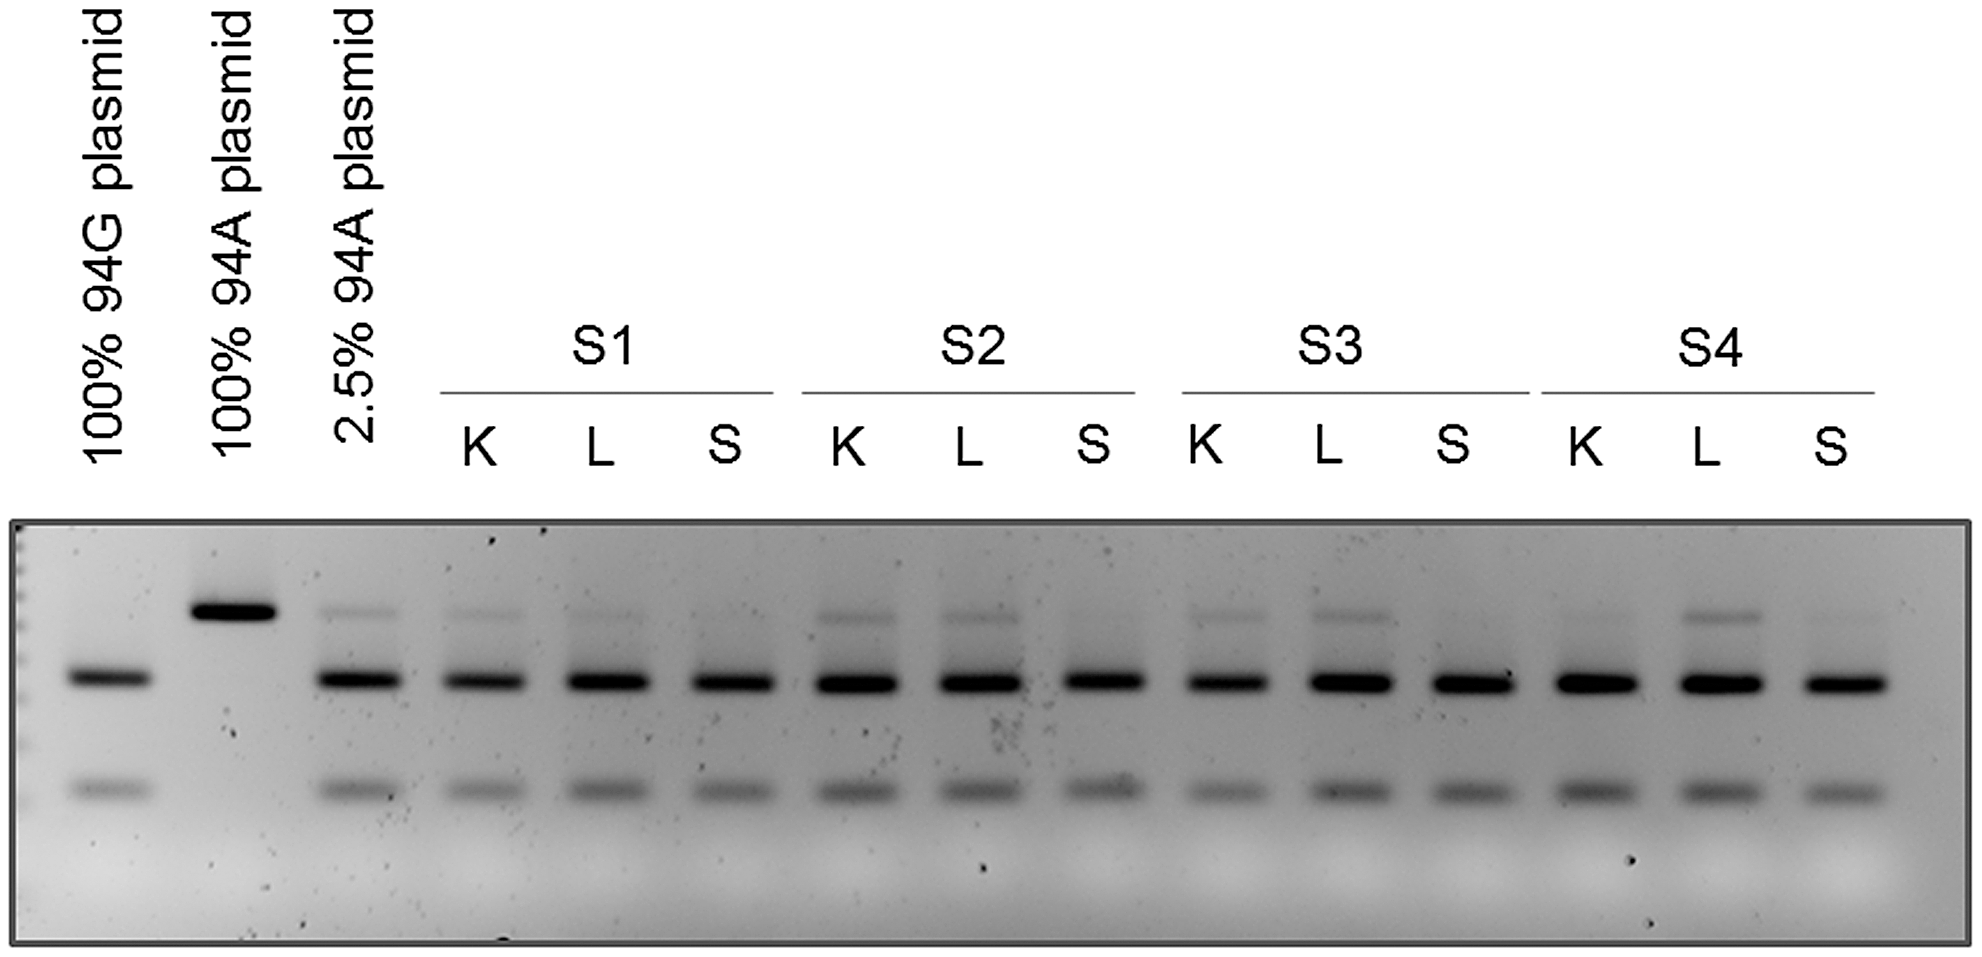 Mutation at position 94 is verified by RFLP analysis.